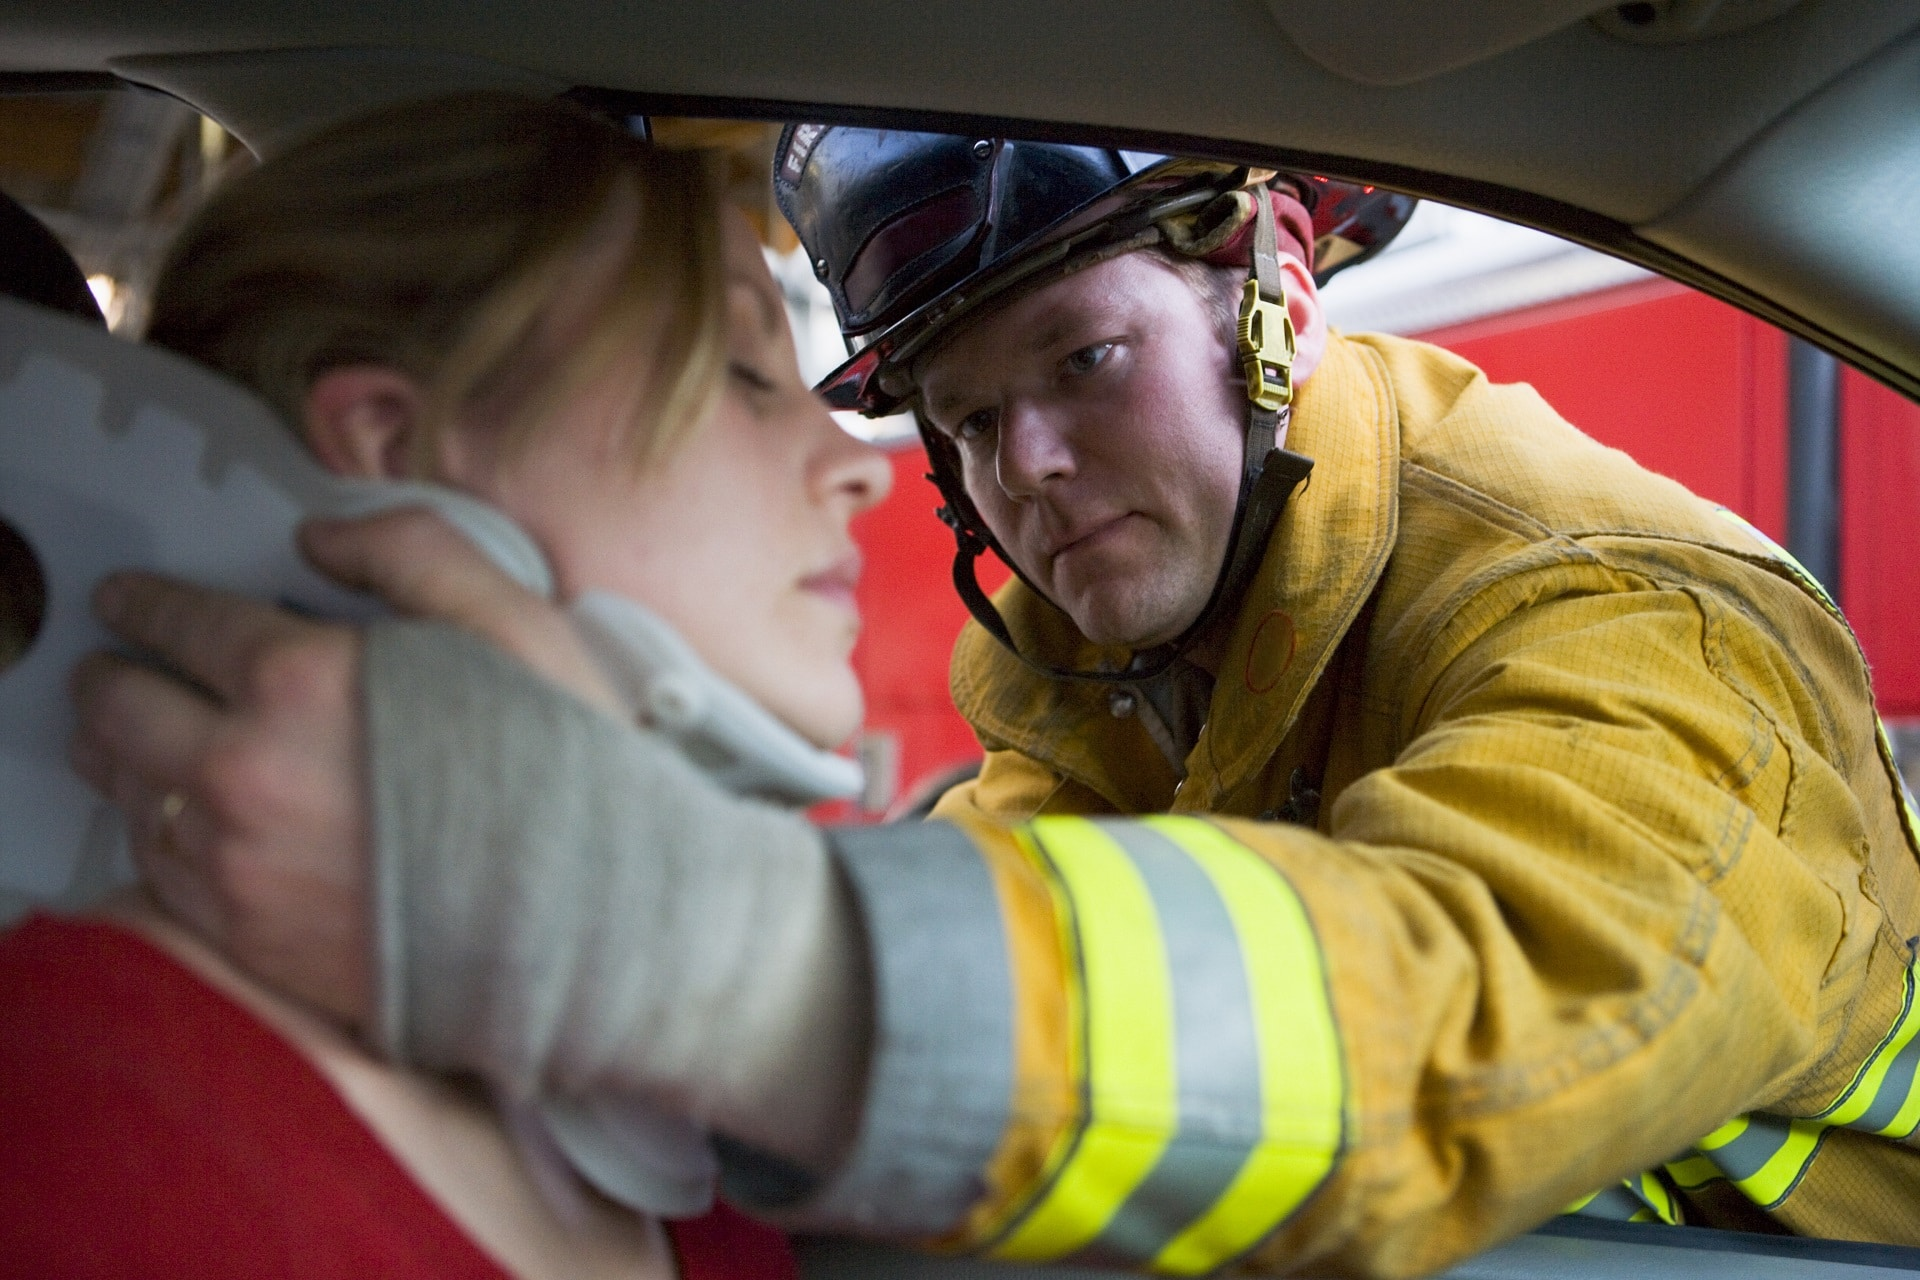 Look Out For These Delayed Symptoms Following a California Auto Accident